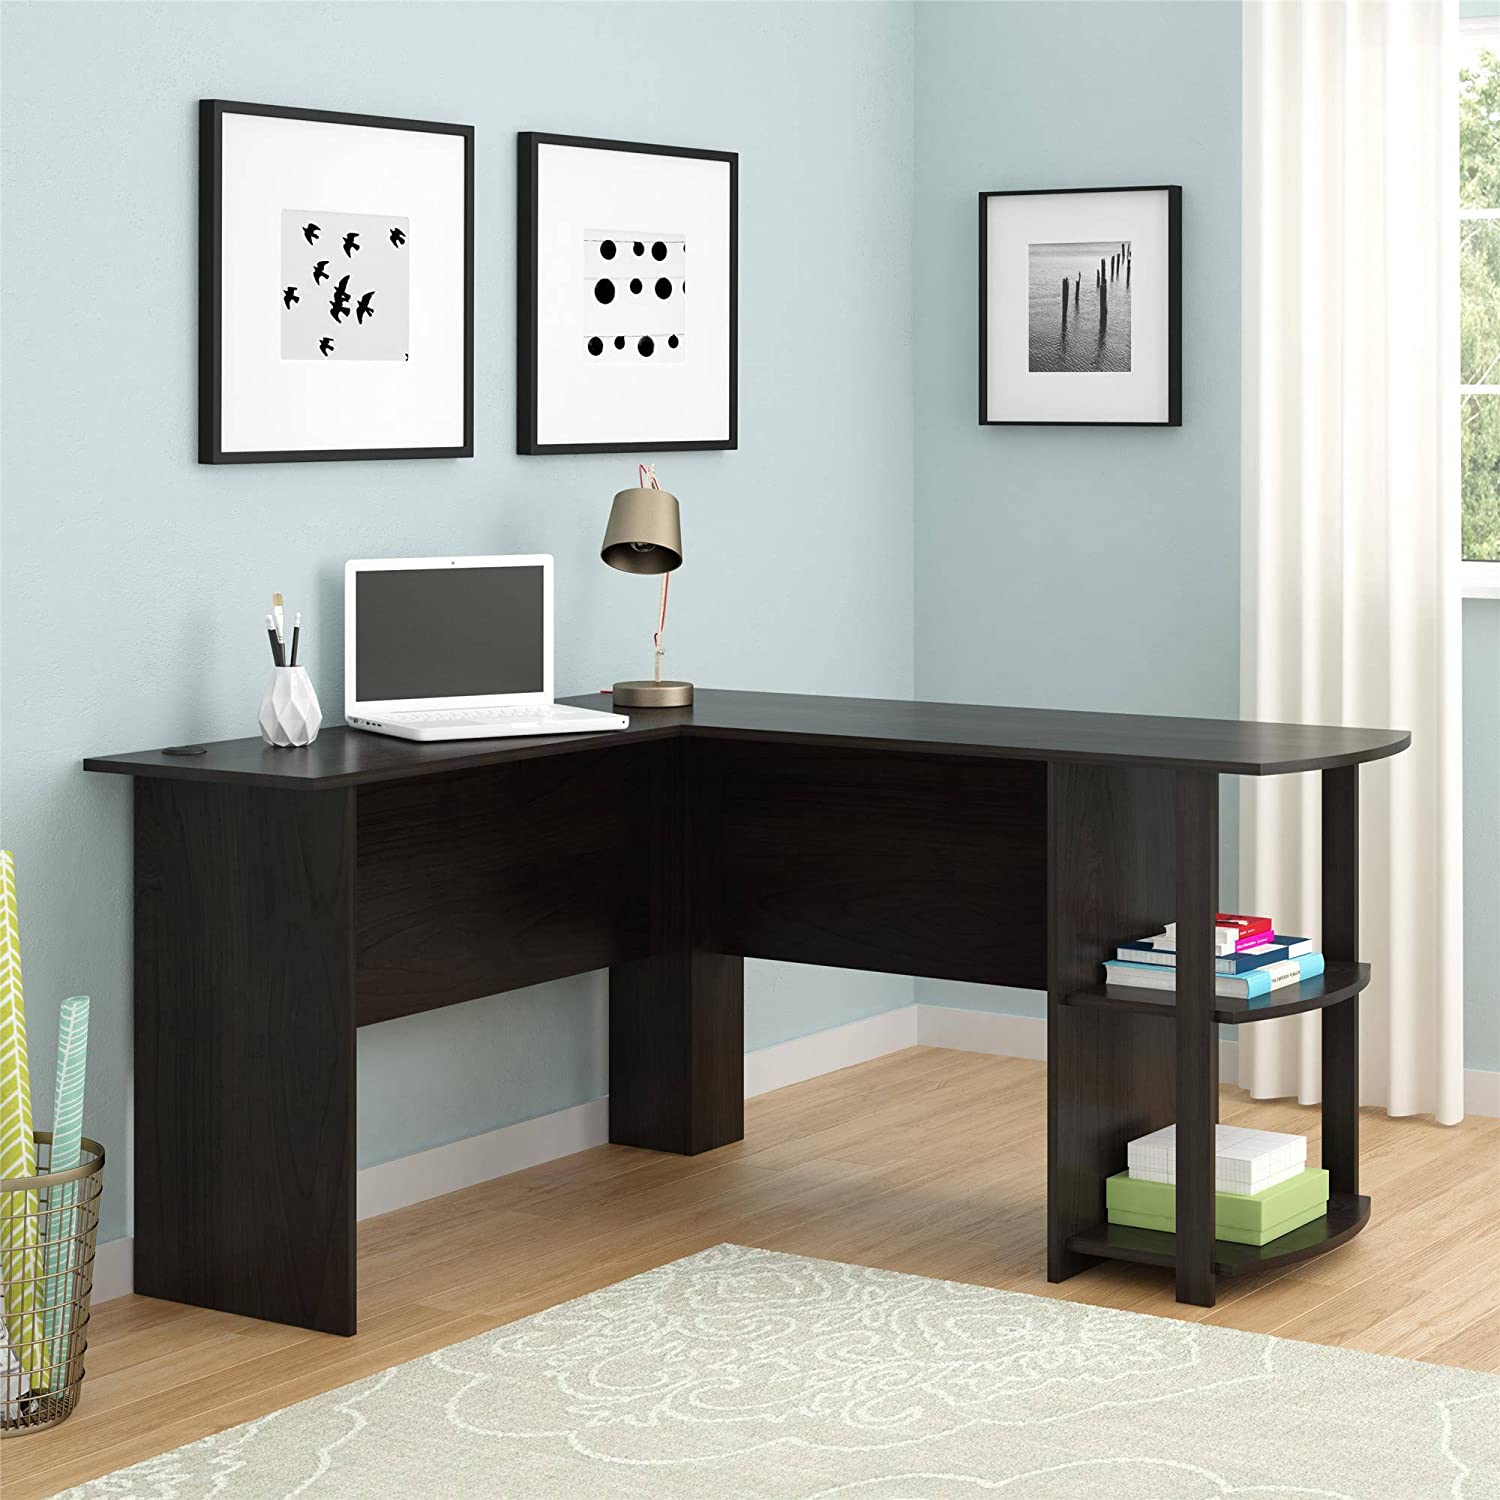 Wooden L-Shaped Desk with Large Workspace, with Side Storage for Easy Access of Materials, for Office or Home Use, Multiple Finishes L 53.62 x W 51.31 x H 28.31 in Dark Russet Cherry